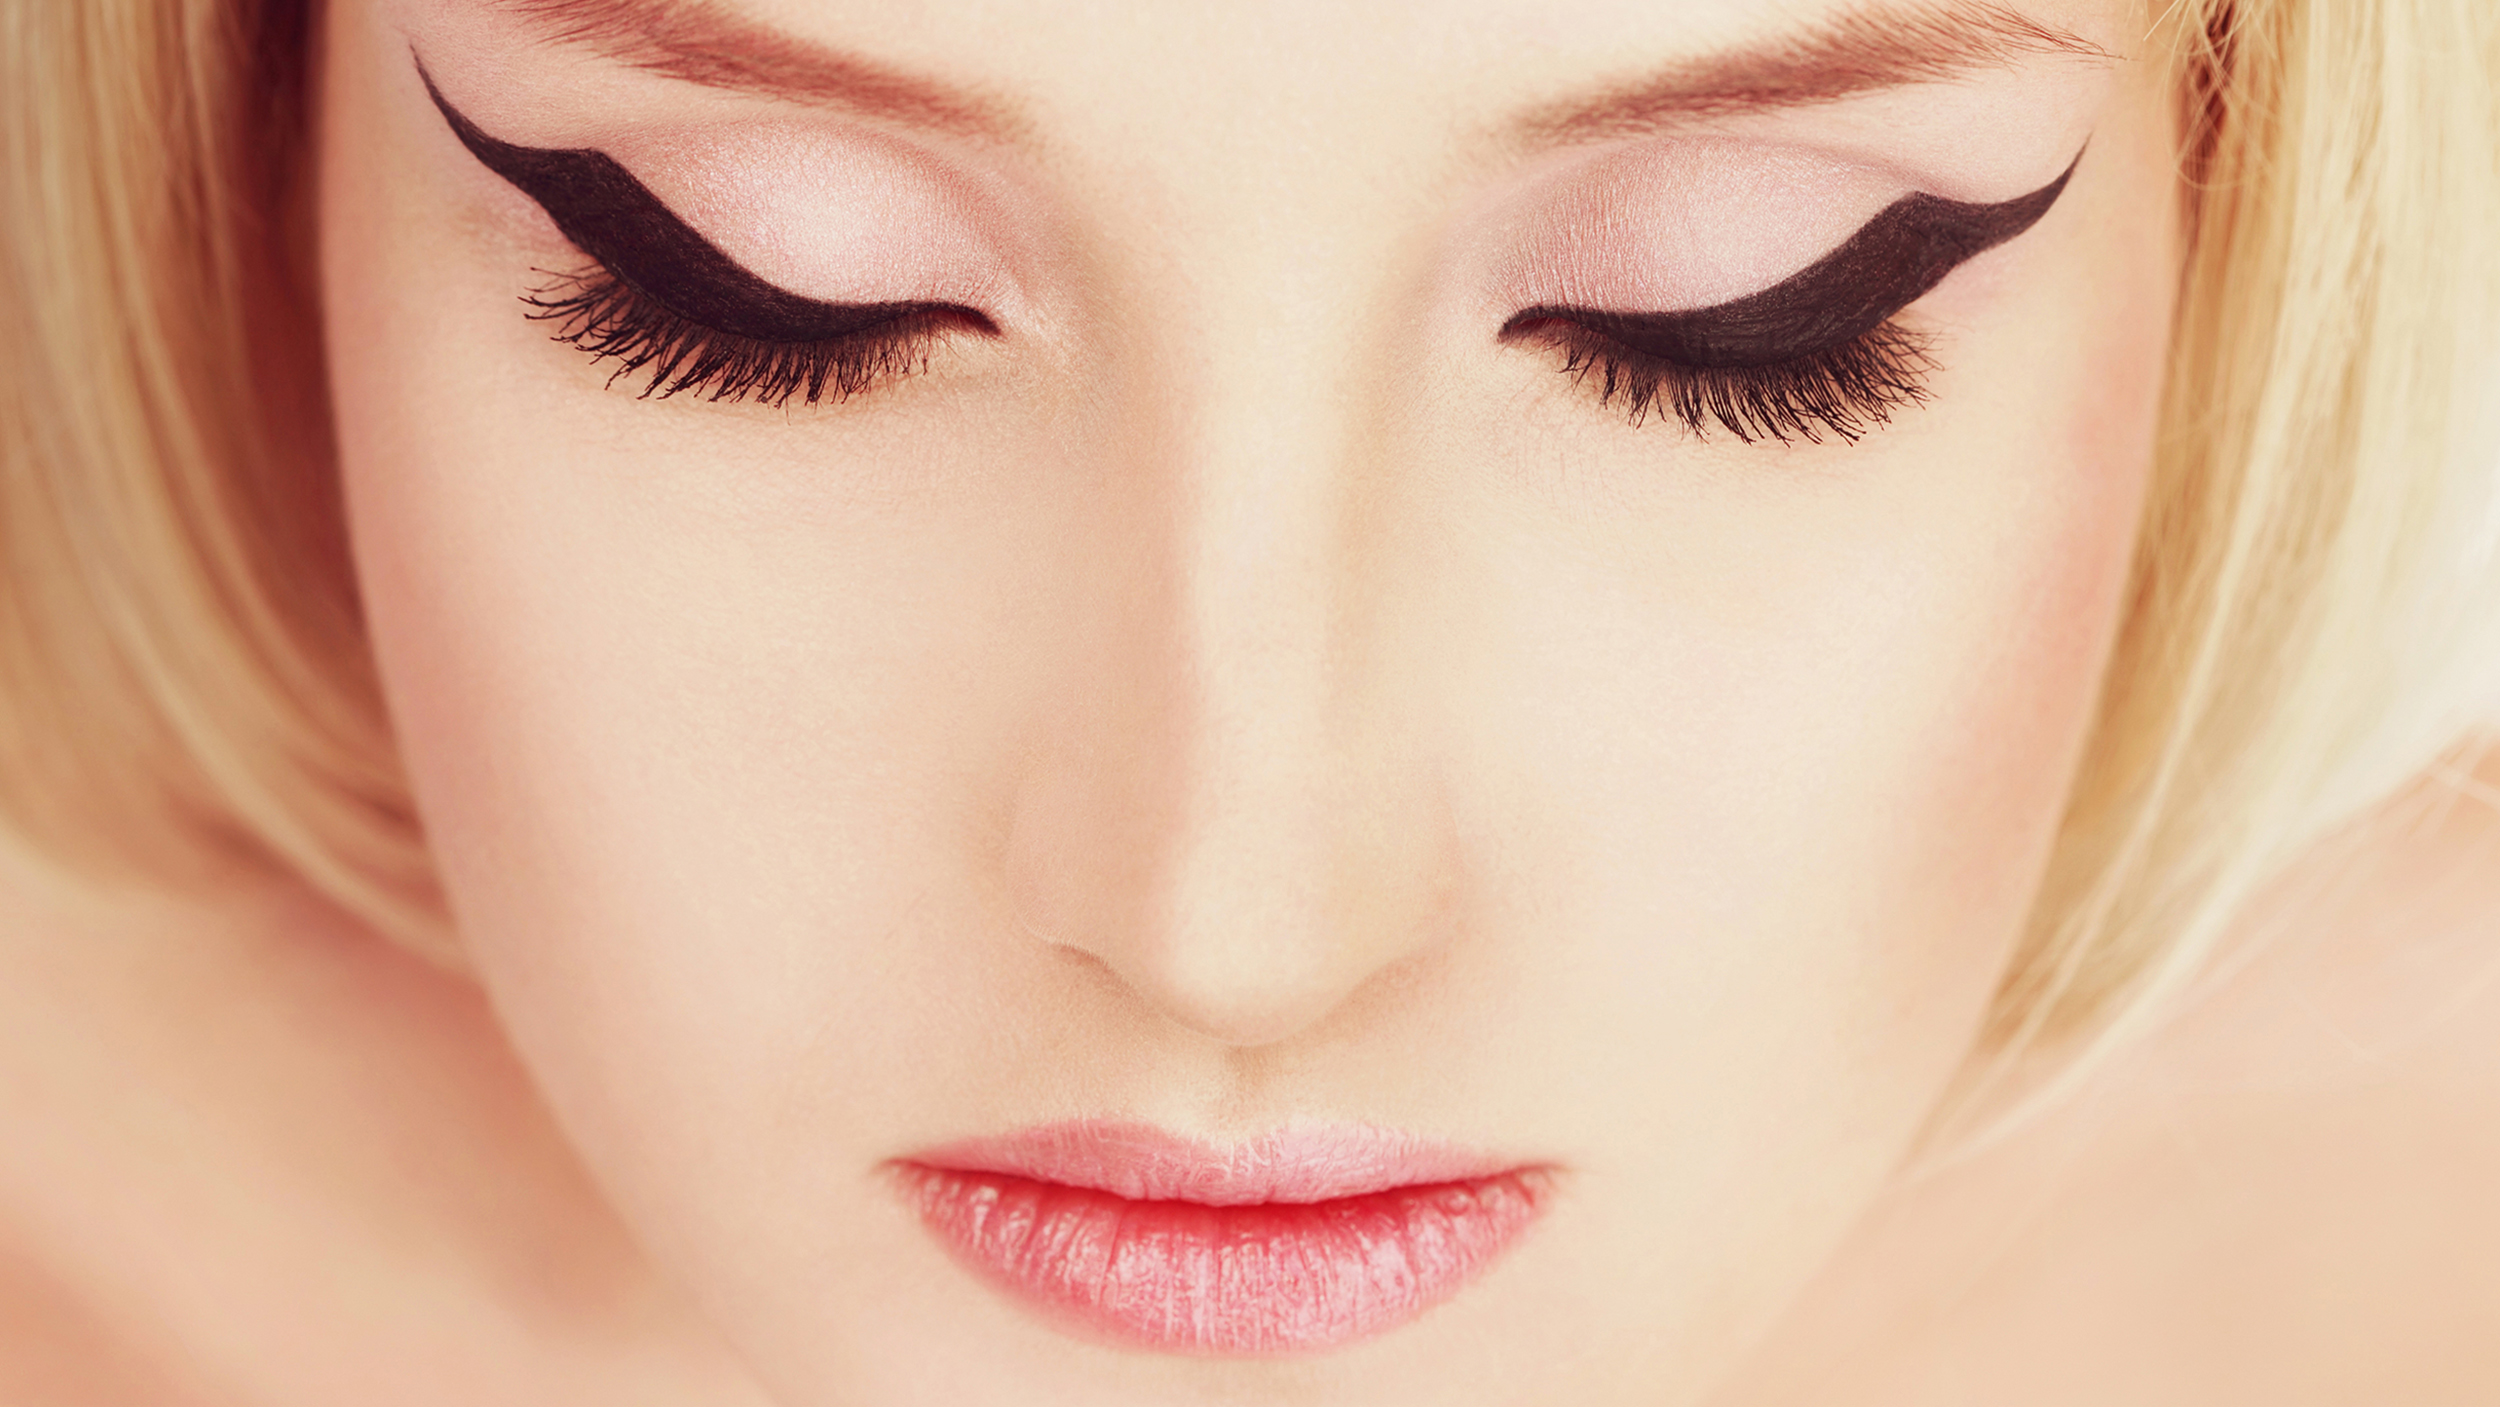 13 Amazing Eyeliner Hacks To Finally Get That Perfect Line